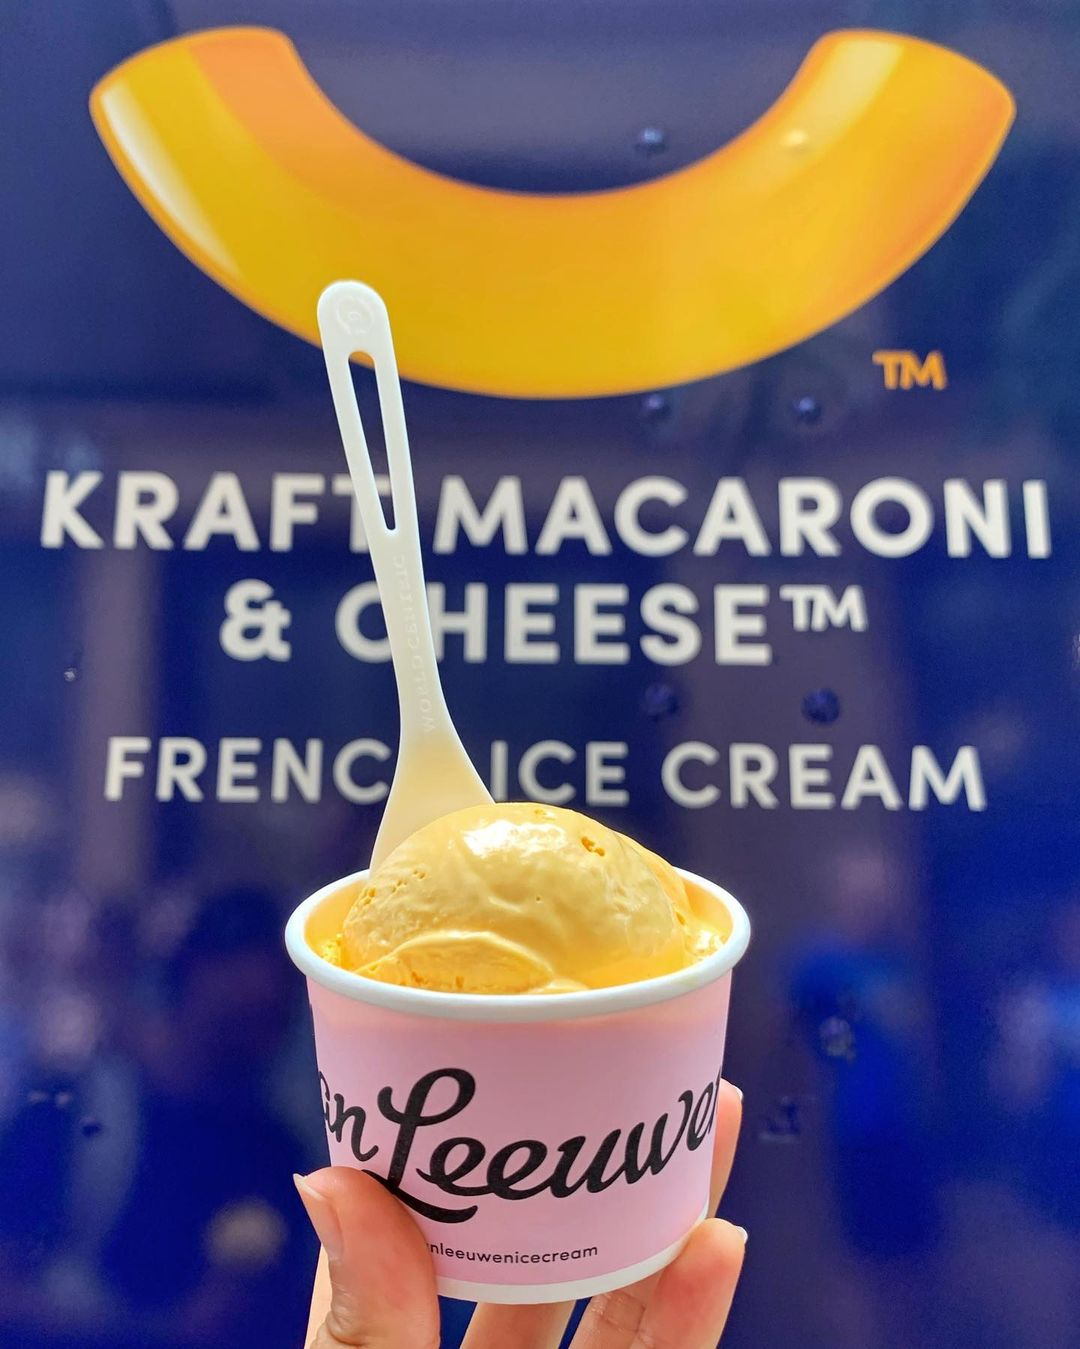 Mac & Cheese Ice Cream? Two Comfort Foods Blend Together